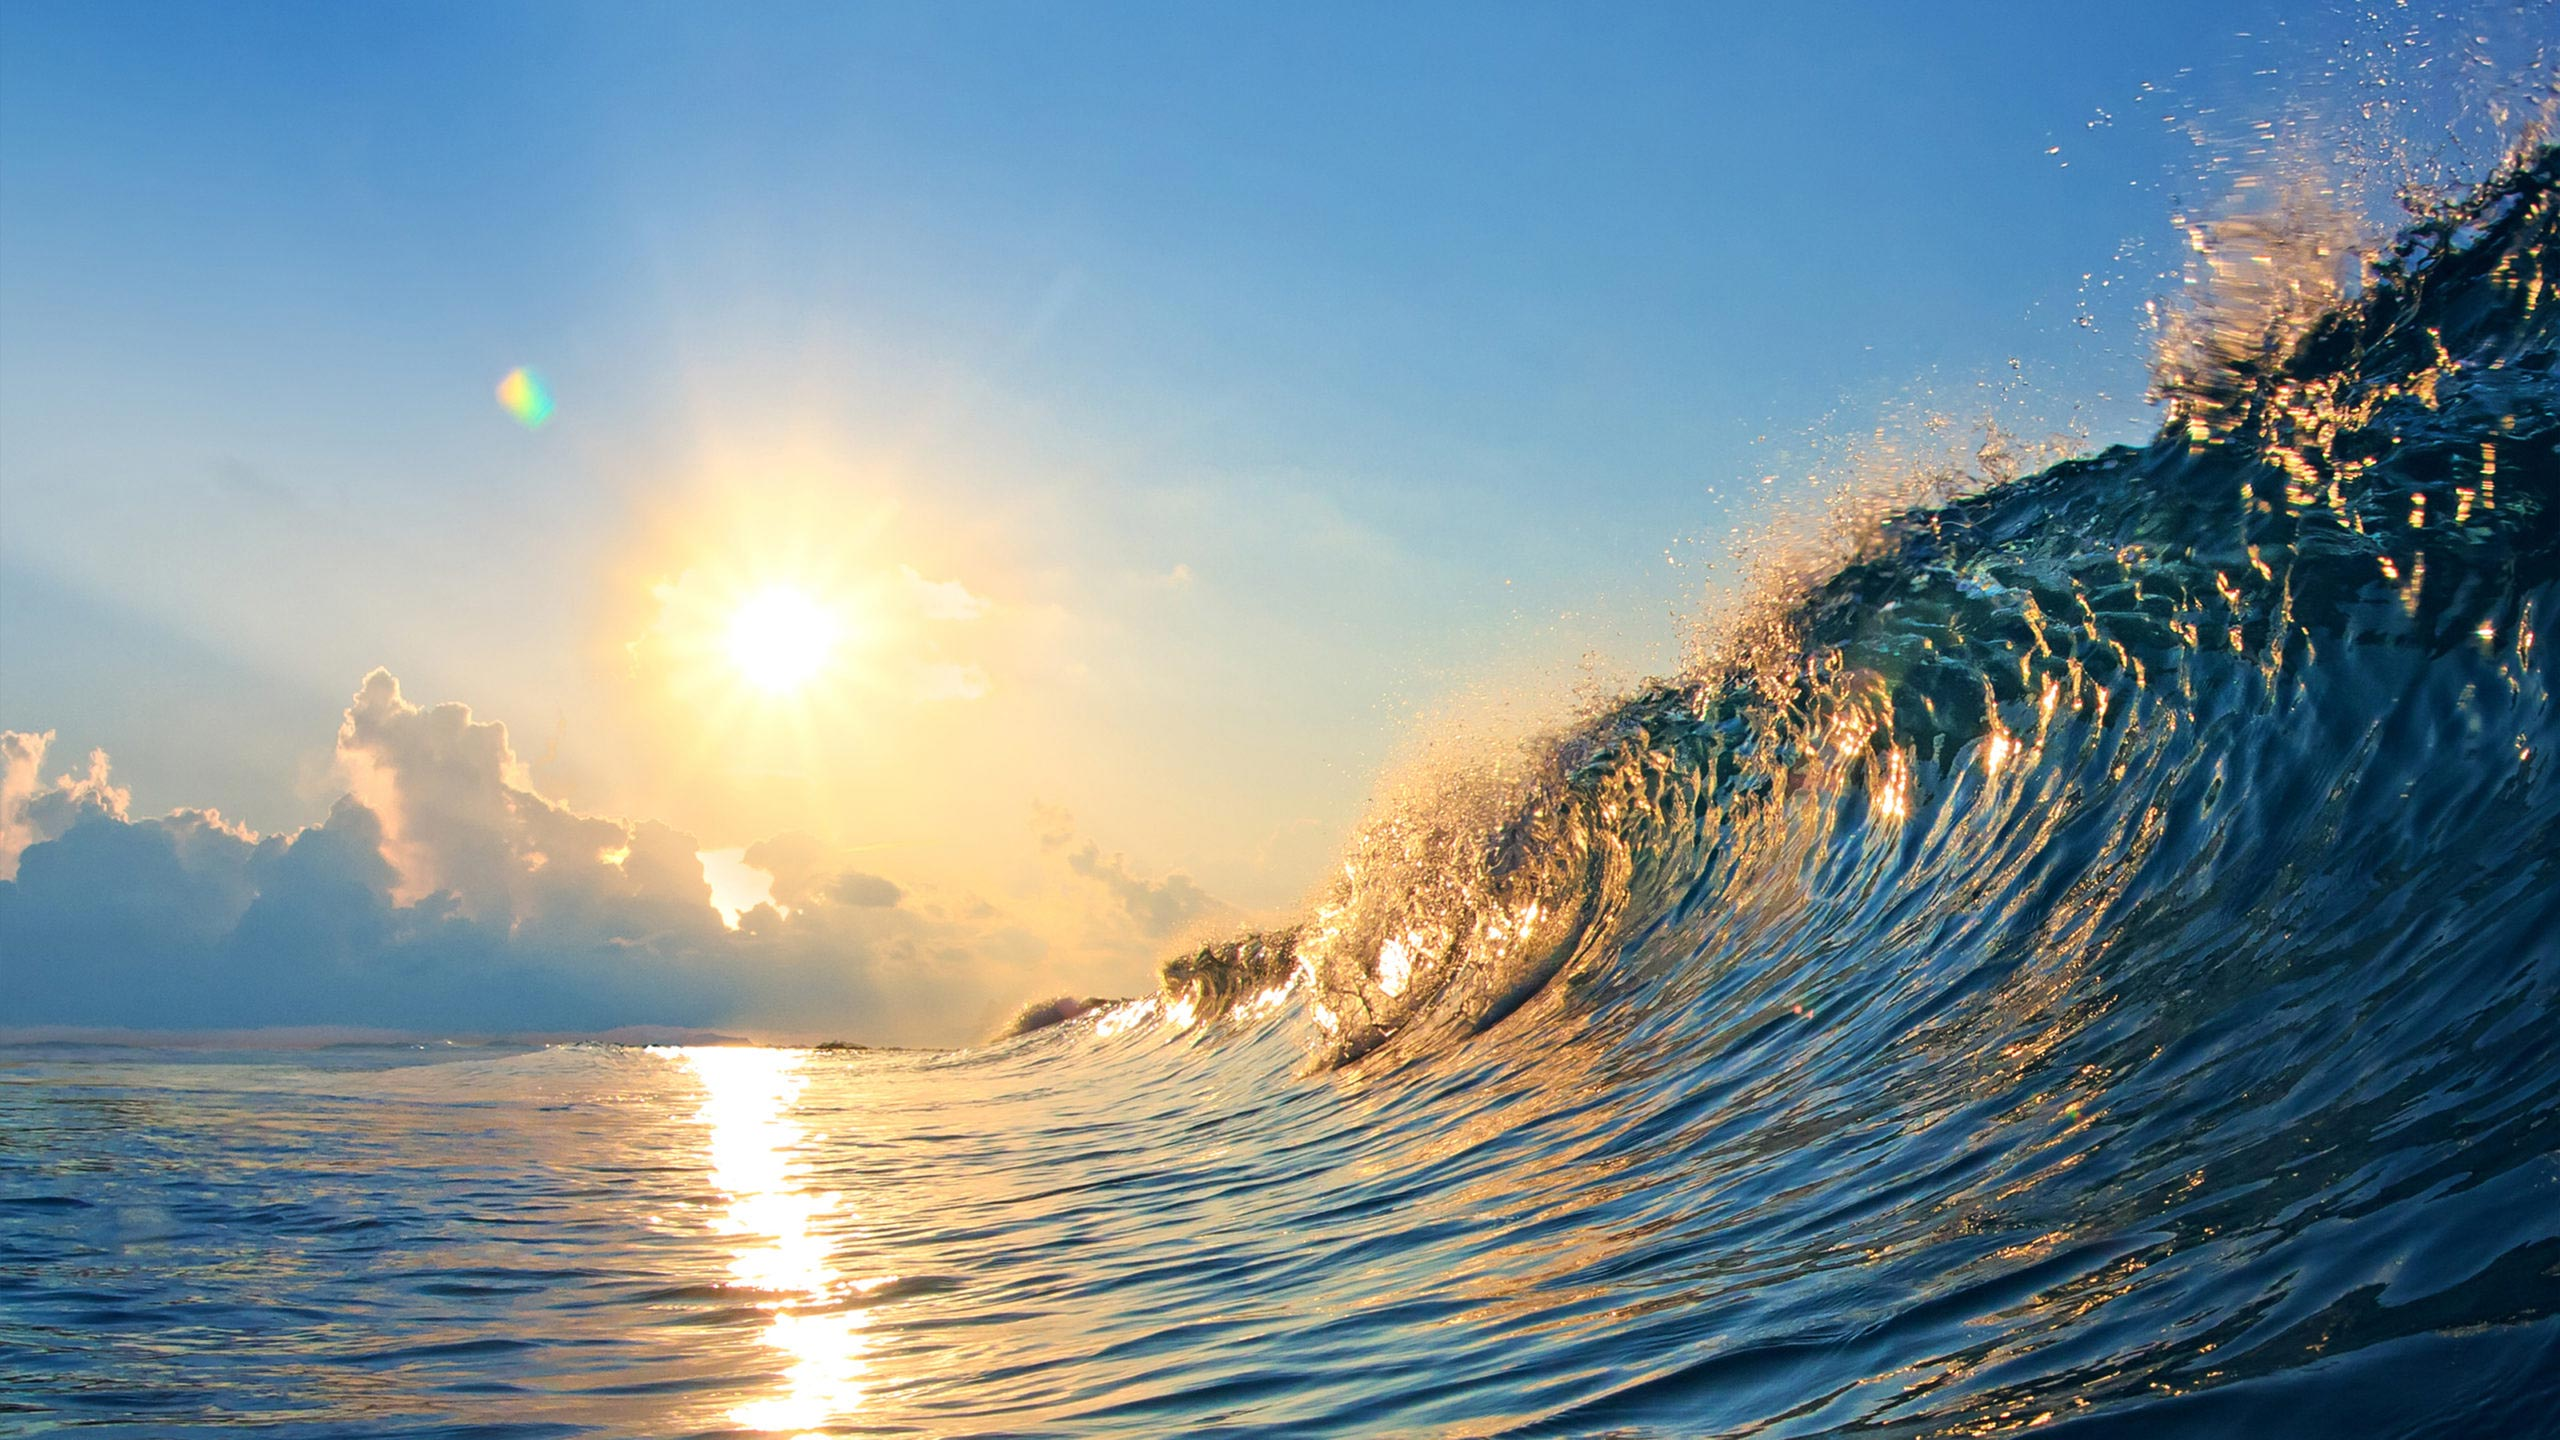 Image of a large ocean wave shining in the bright sunlight